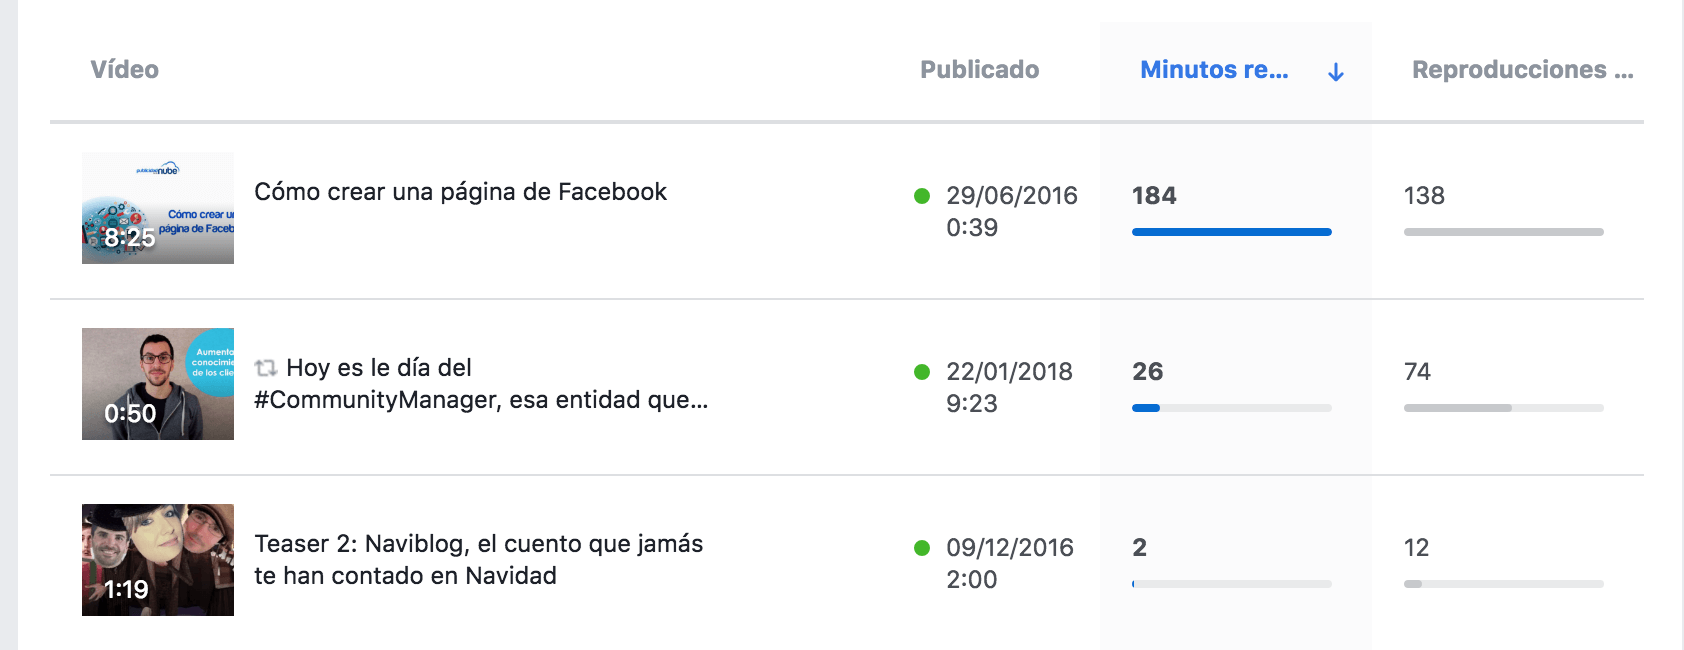 Facebook insights video 2